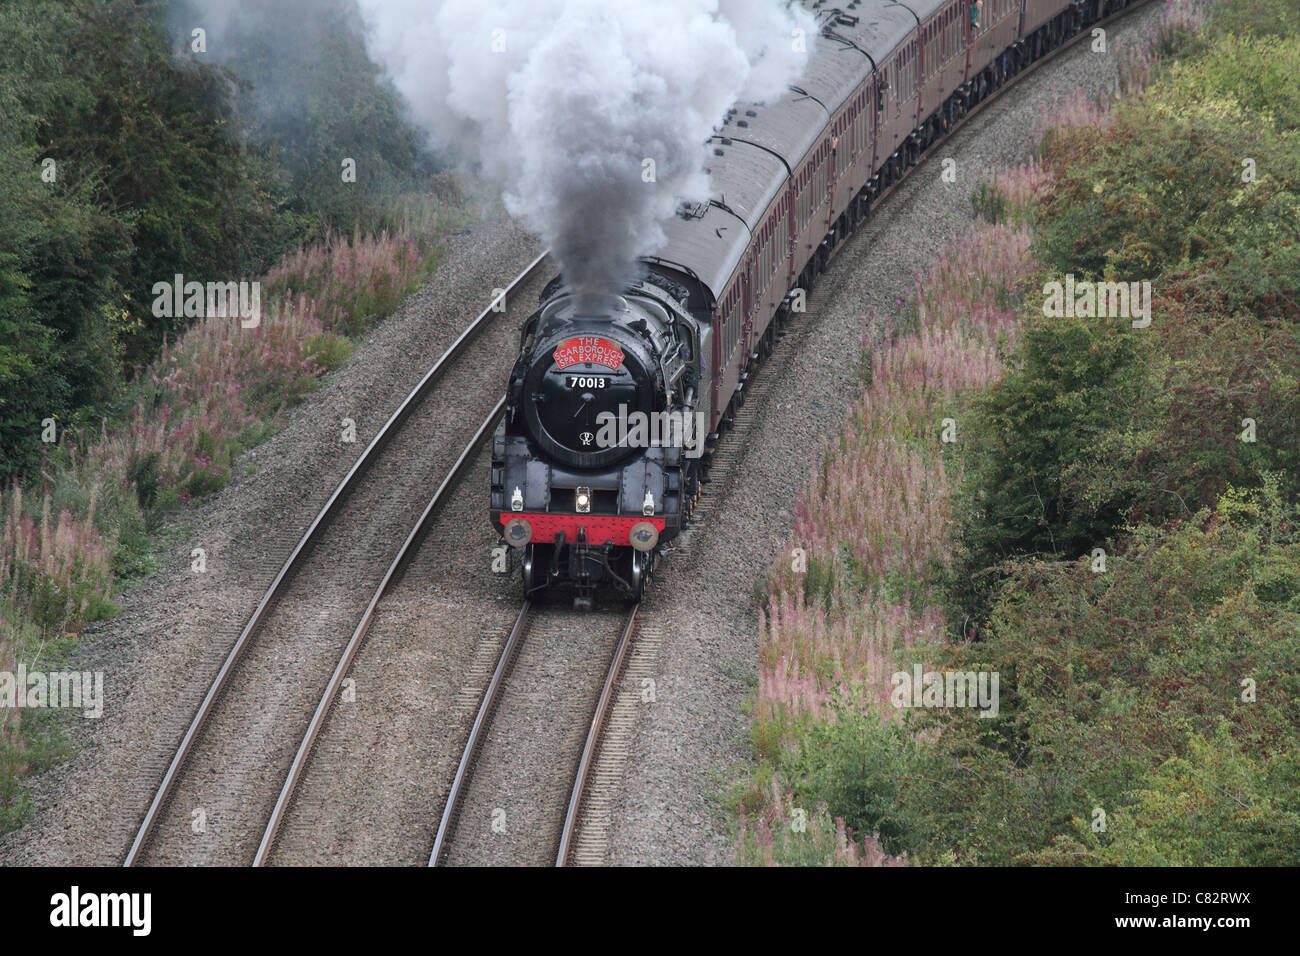 Scarborough express Steam locomotive  train with smoke running on tracks Stock Photo